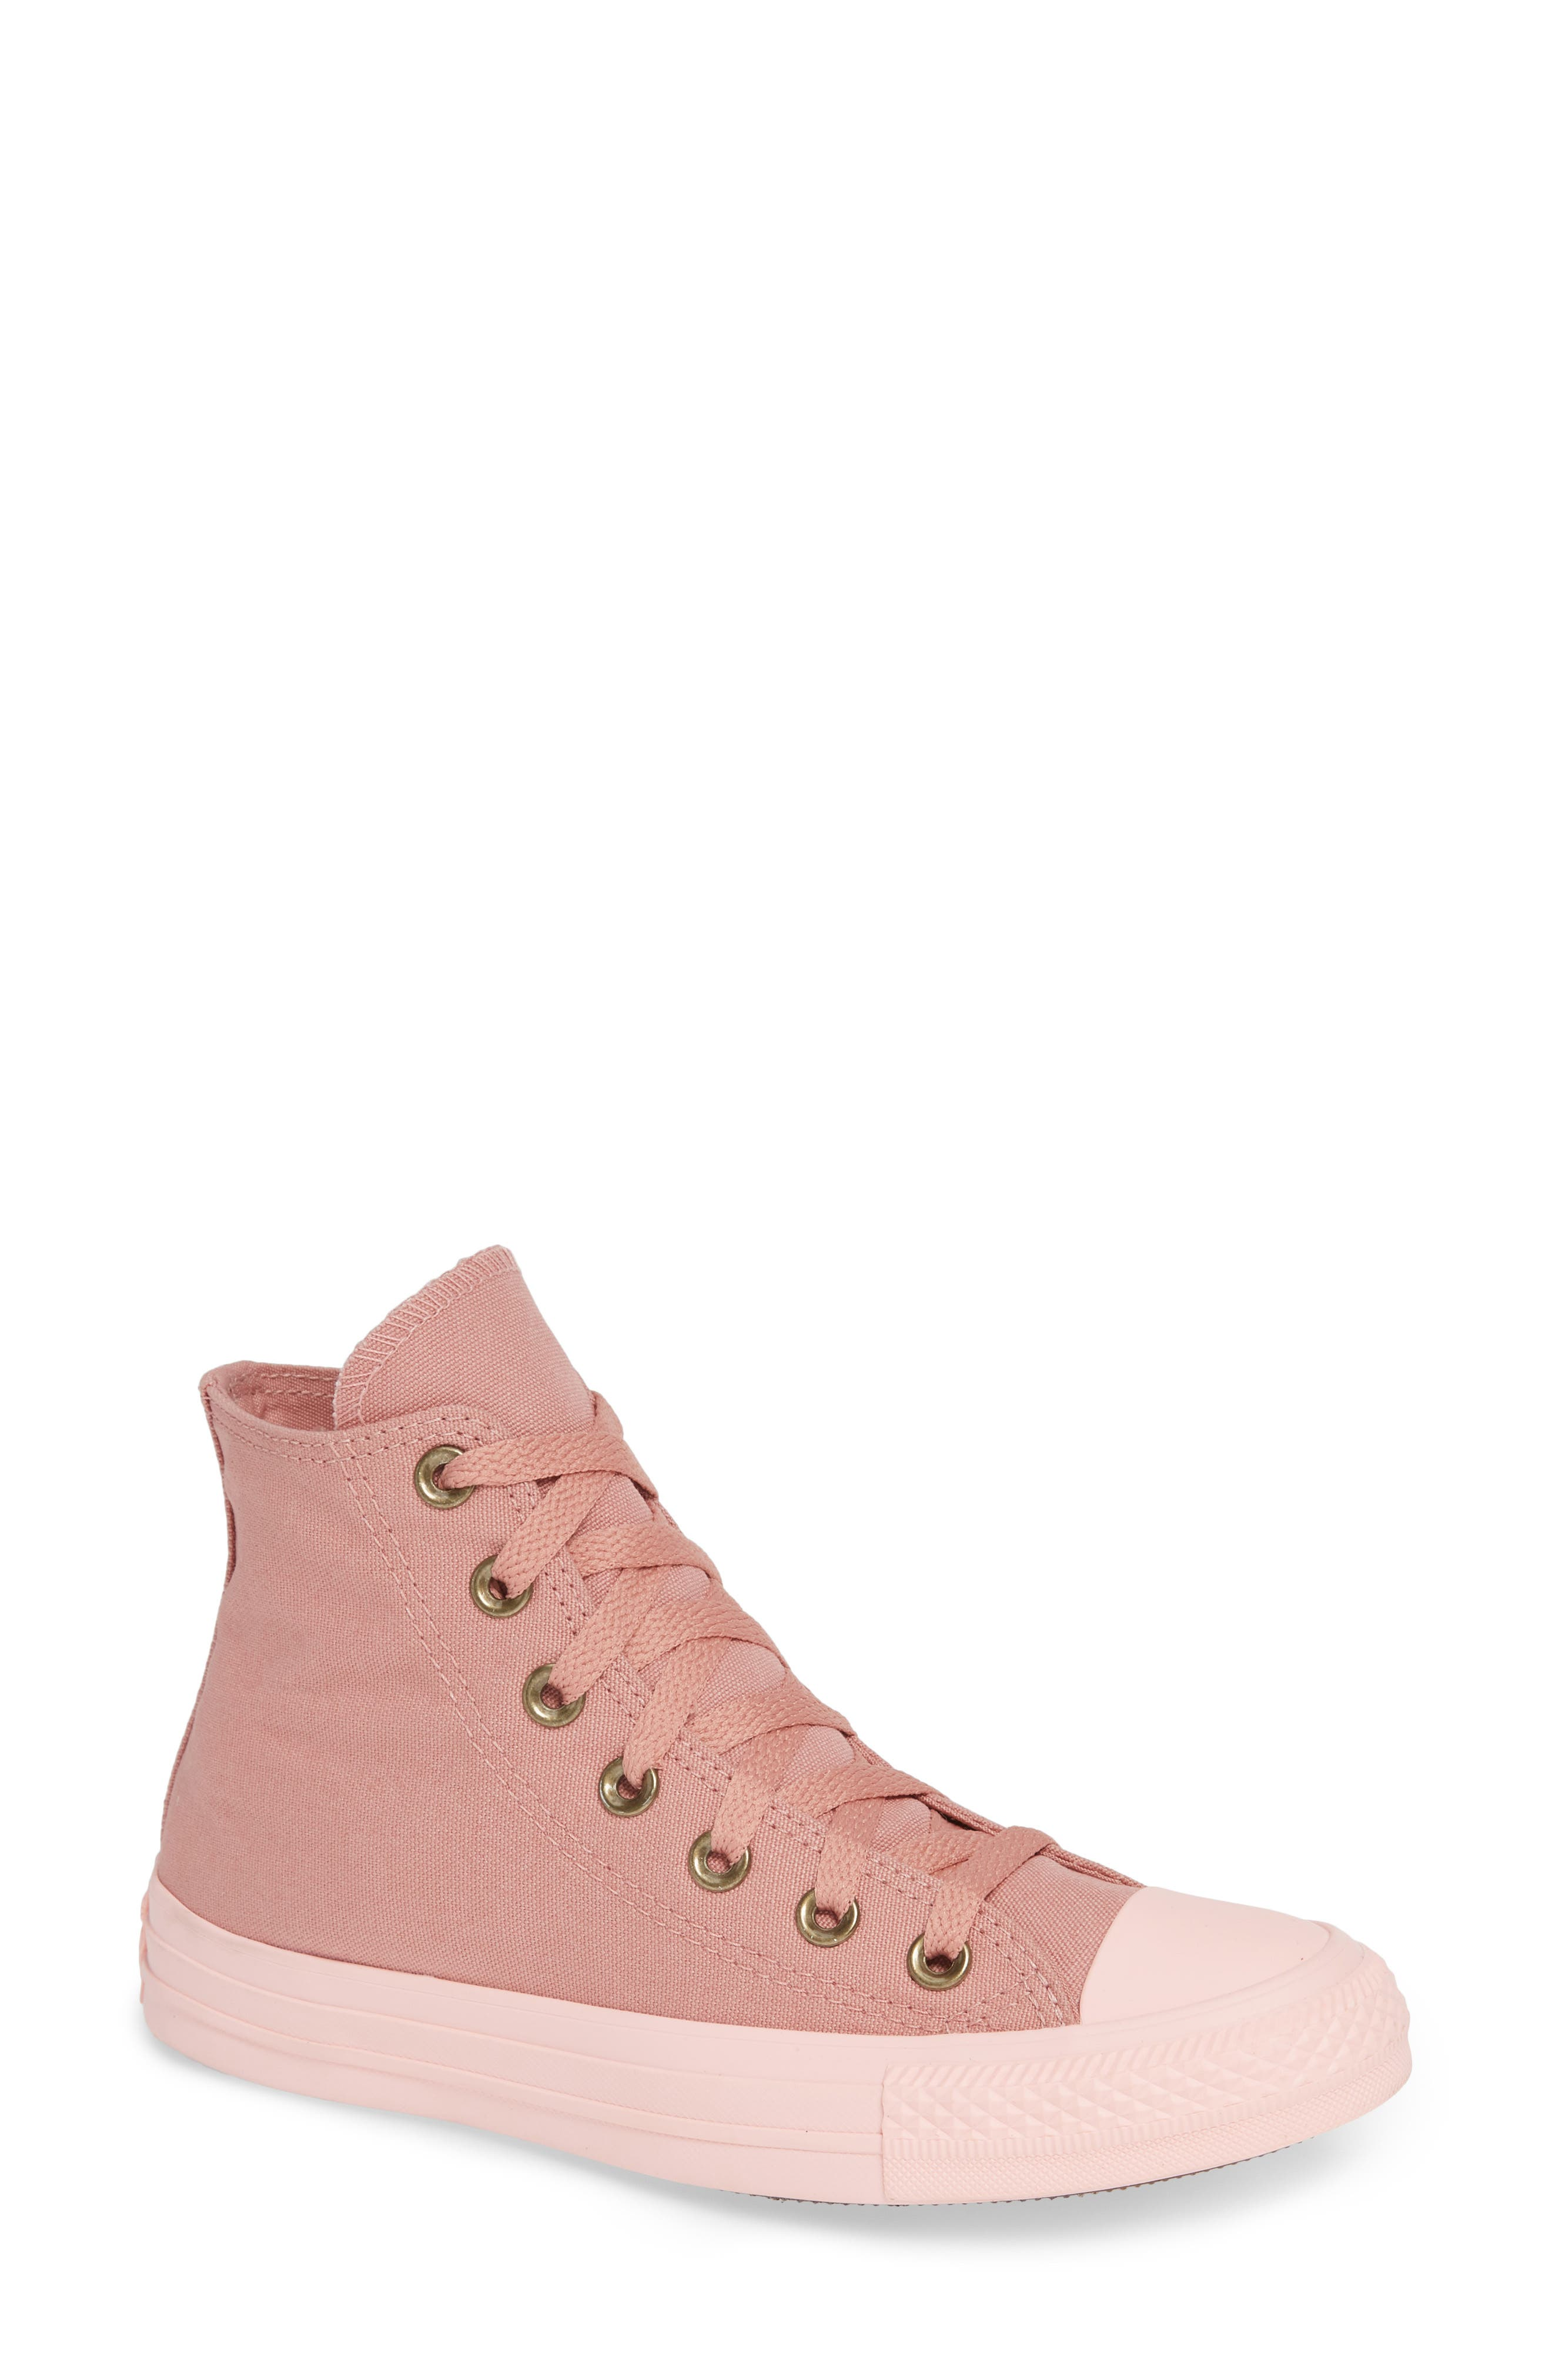 Chuck Taylor<sup>®</sup> All Star<sup>®</sup> Botanical High Top Sneaker,                         Main,                         color, RUST PINK